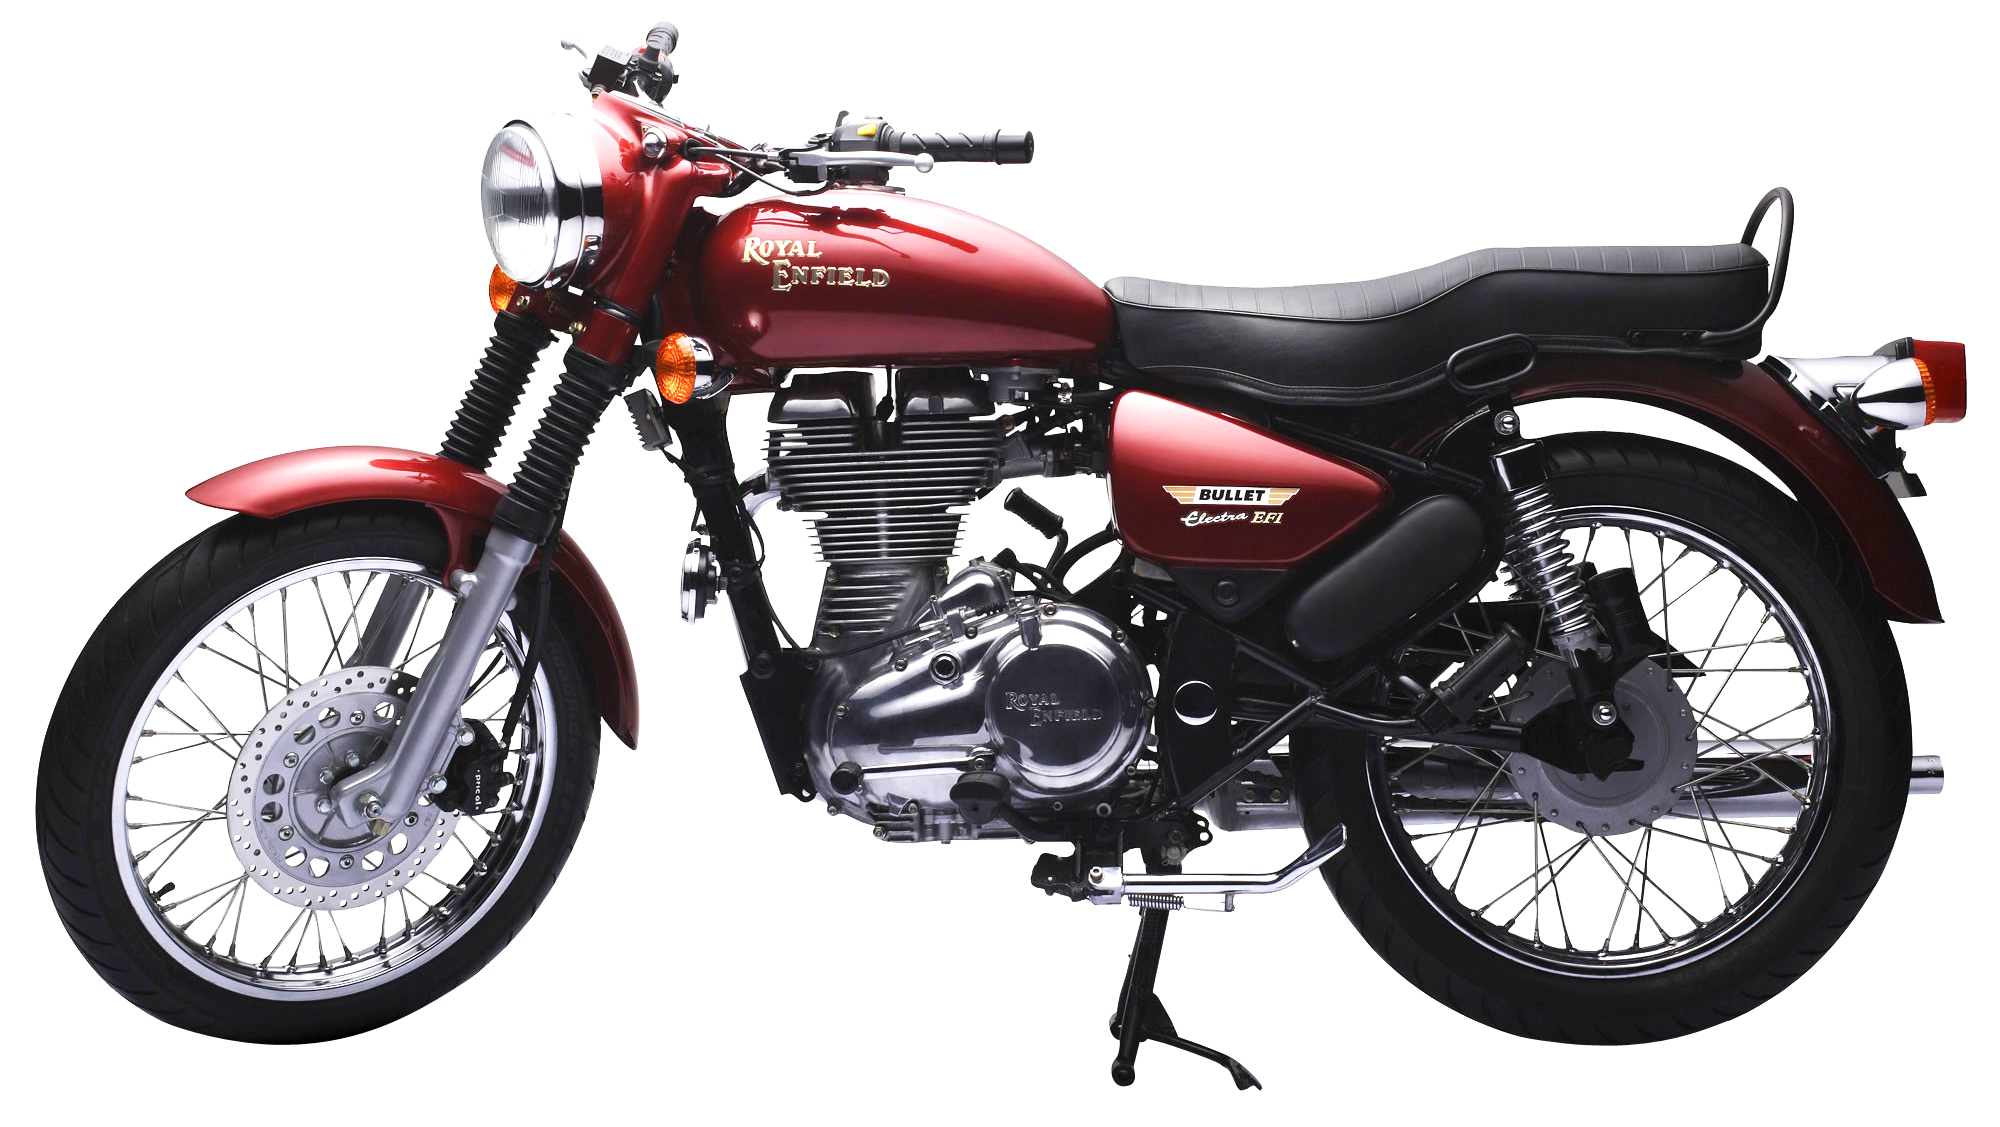 Motorcycle clipart bullet bike. Royal enfield electra efi